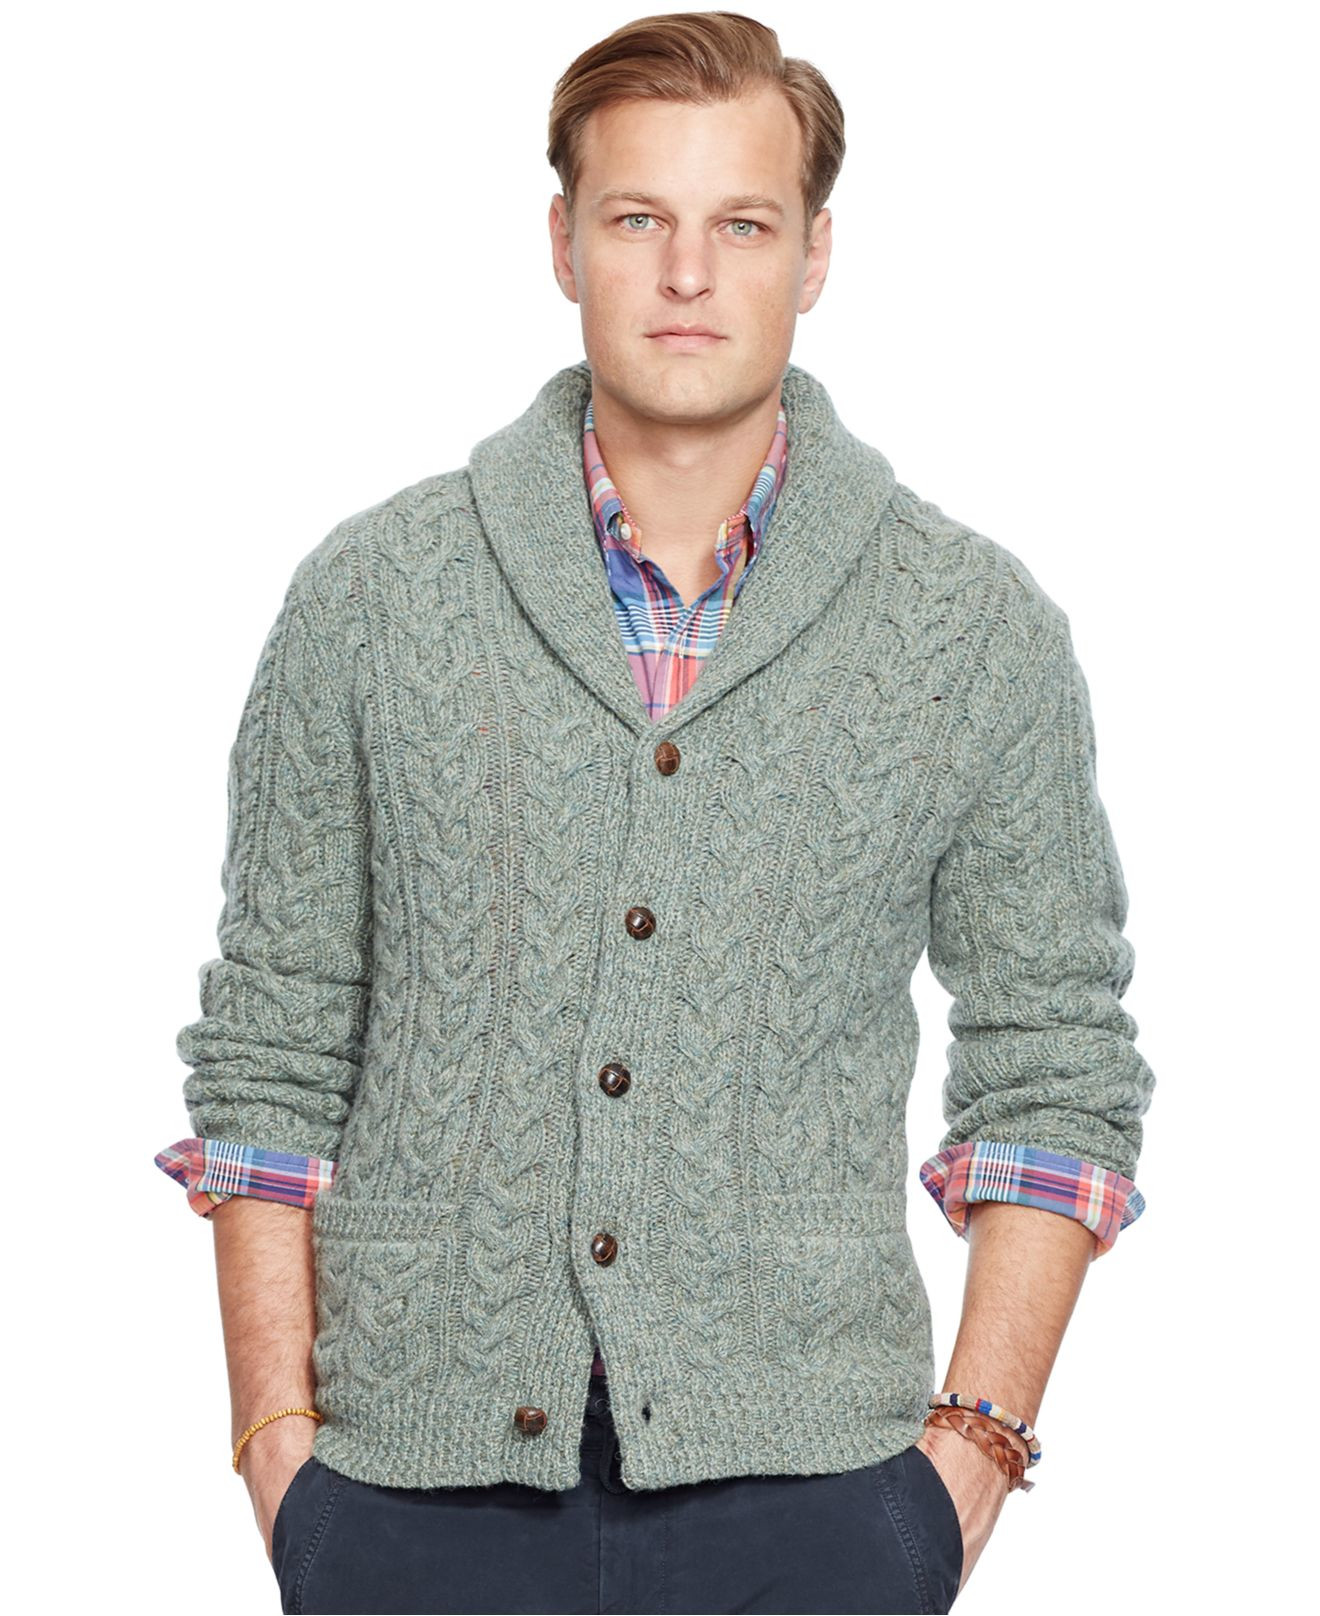 Elegant Lyst Polo Ralph Lauren Big and Tall Cable Knit Wool Cable Knit Cardigan Sweater Of Wonderful 46 Models Cable Knit Cardigan Sweater